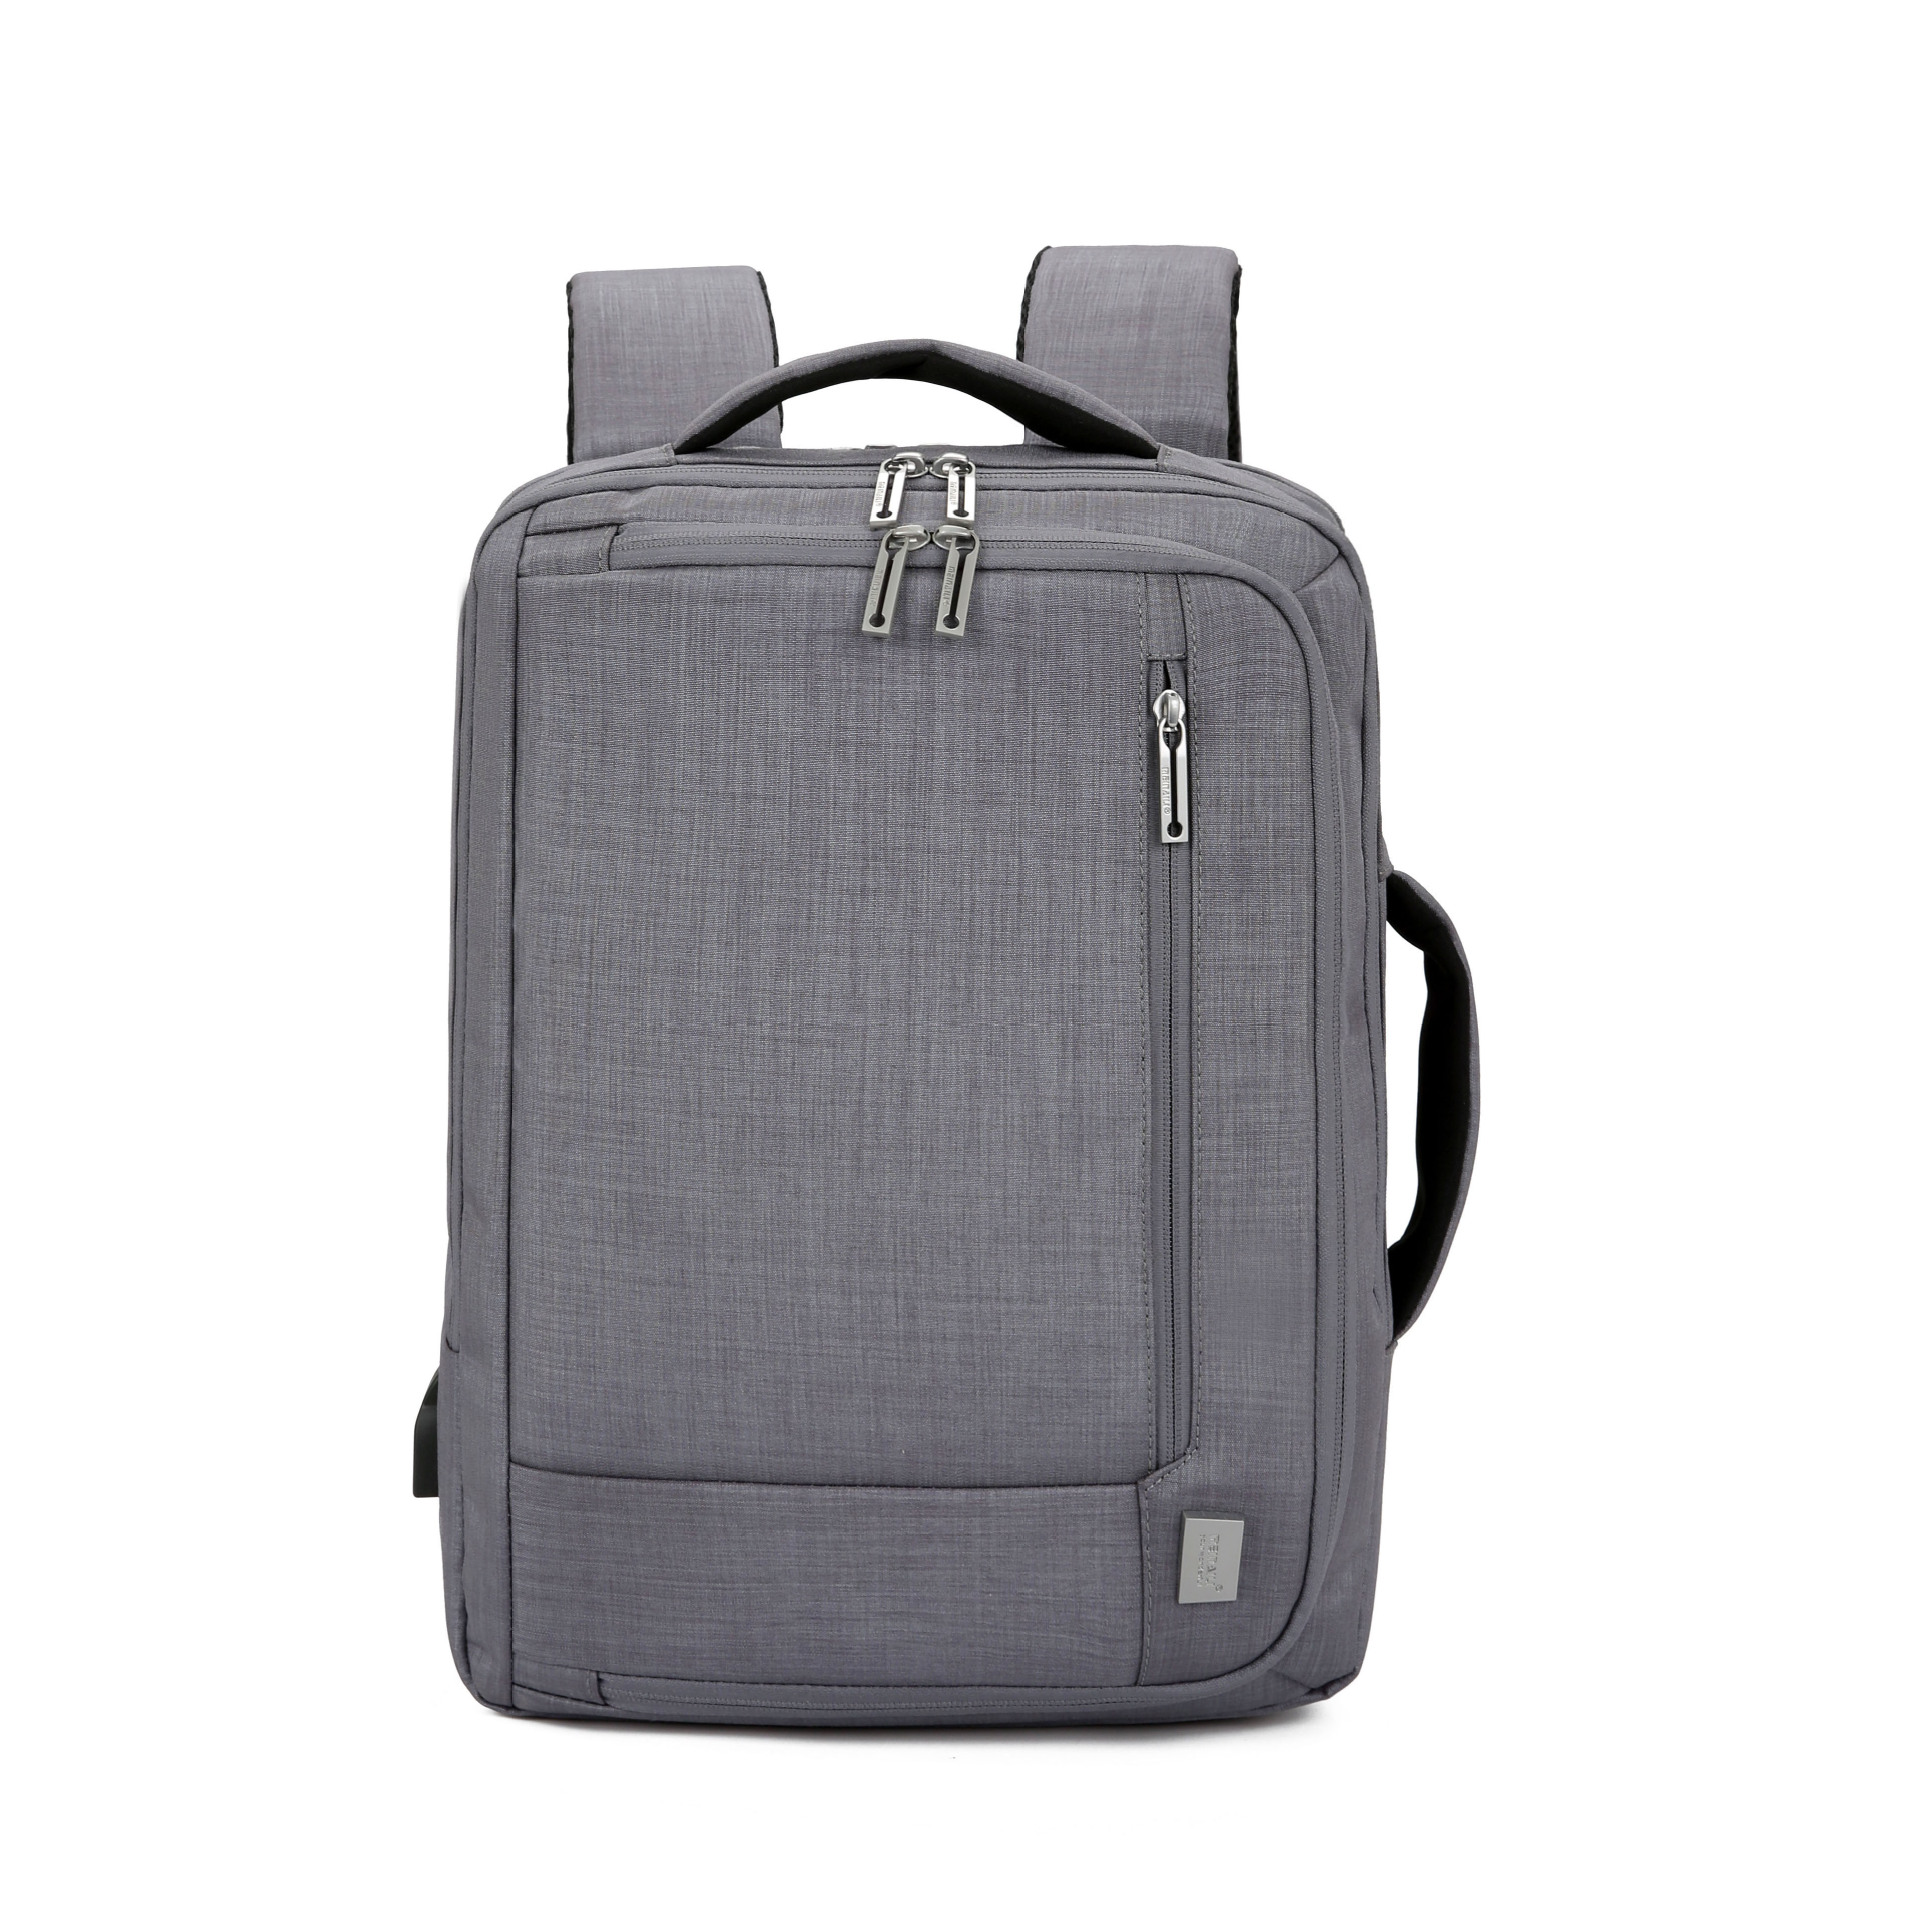 J&q Store New Usb Rechargeable Laptop Bag Style Men's Large-capacity Business Travel Backpack Multifunctional Travel Bag